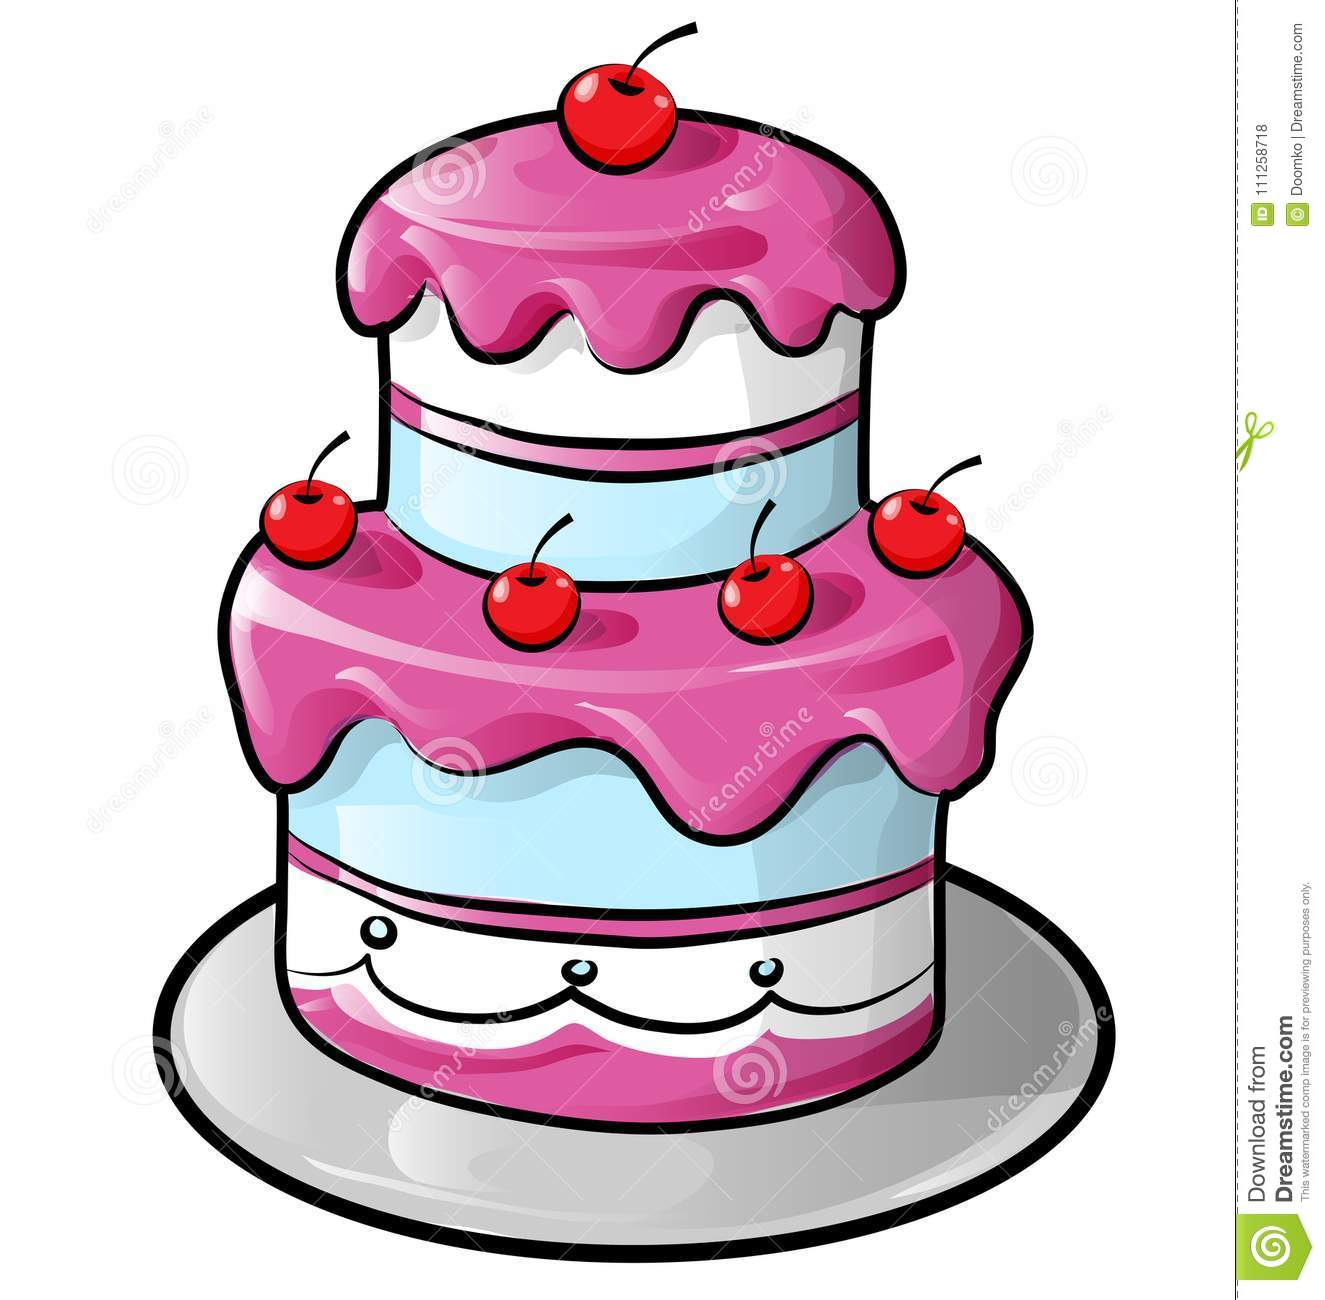 Colorful Birthday Cake With Outline Stock Vector Illustration of